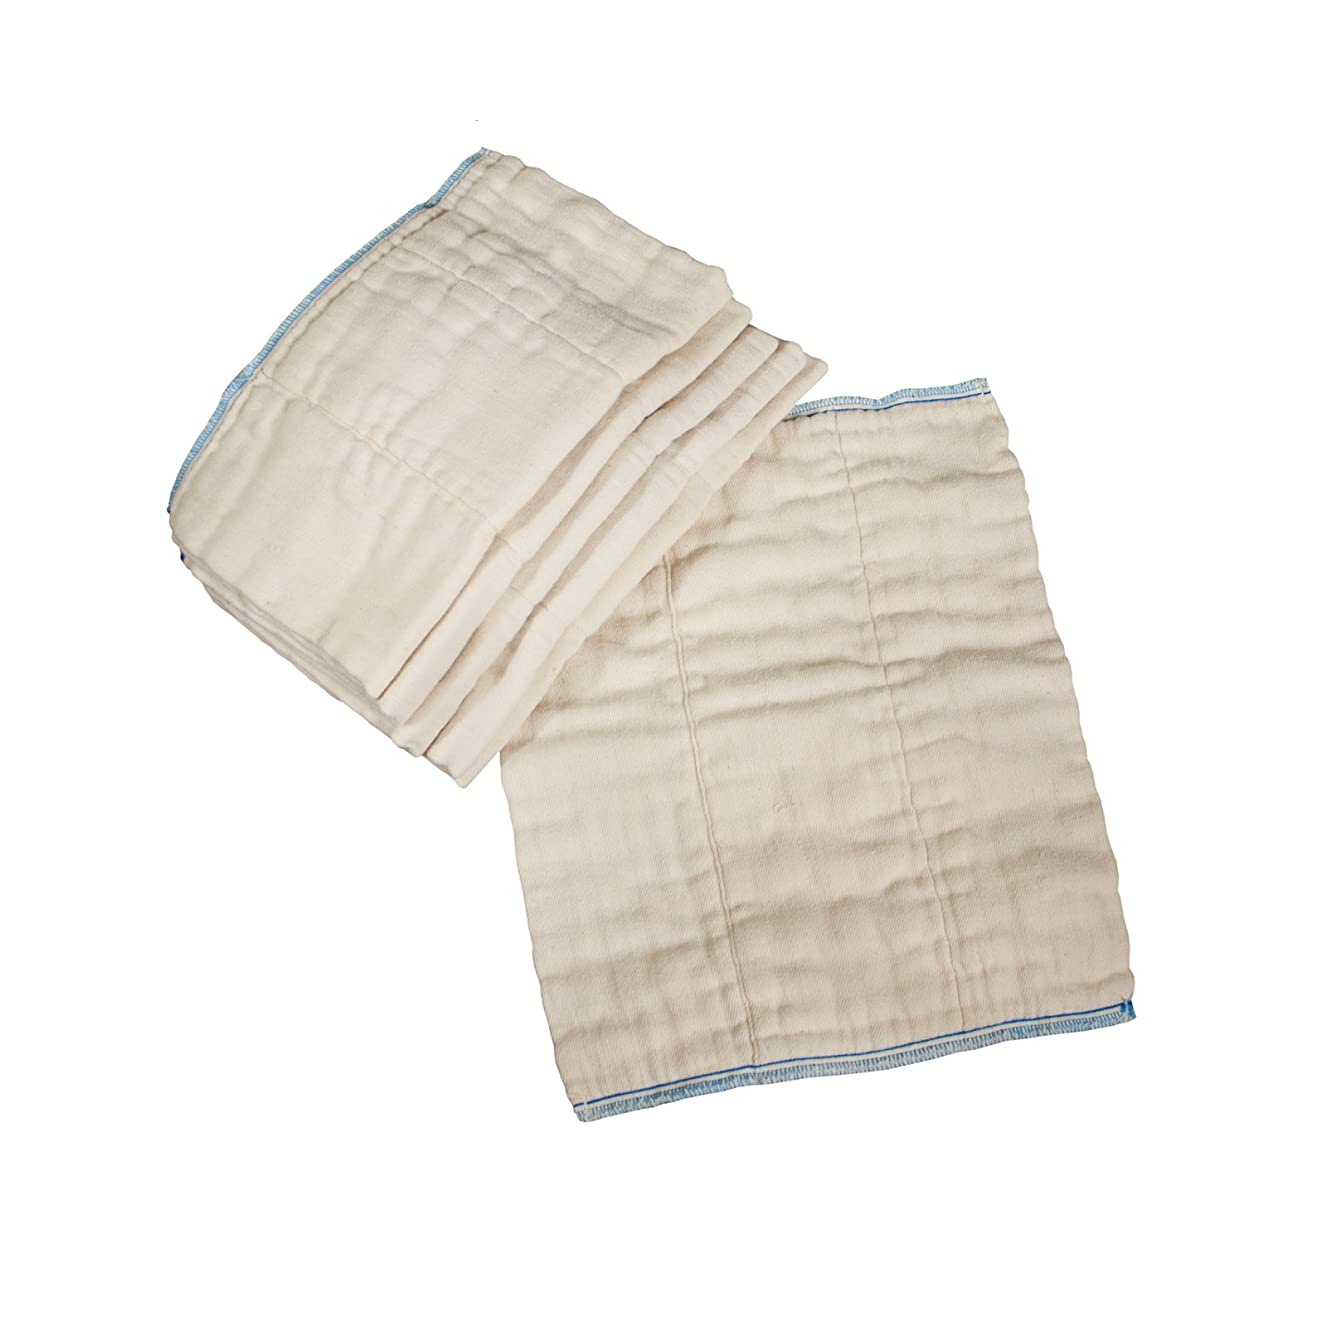 OsoCozy Factory Seconds Prefold diapers, Infant 4x8x4, Unbleached